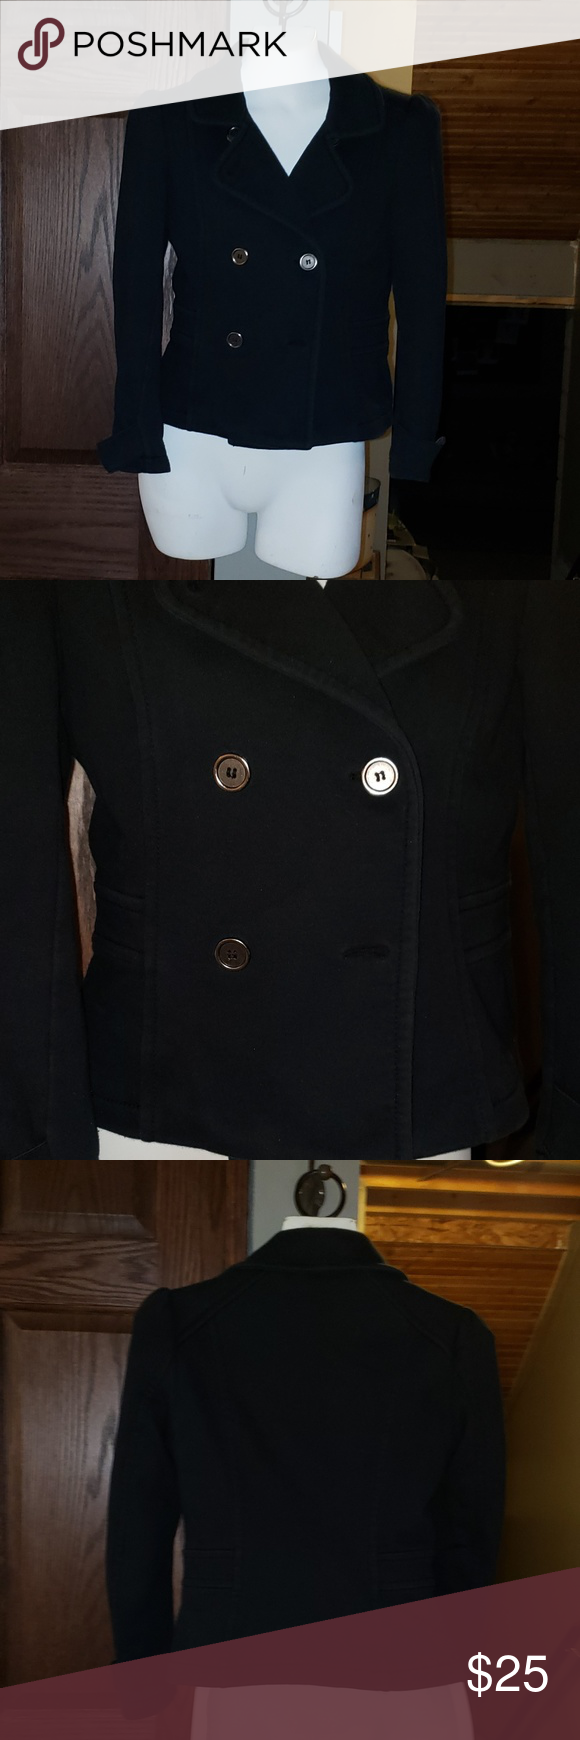 Cute Navy Blue H&M Pea Coat EXTRA Buttons Size 10